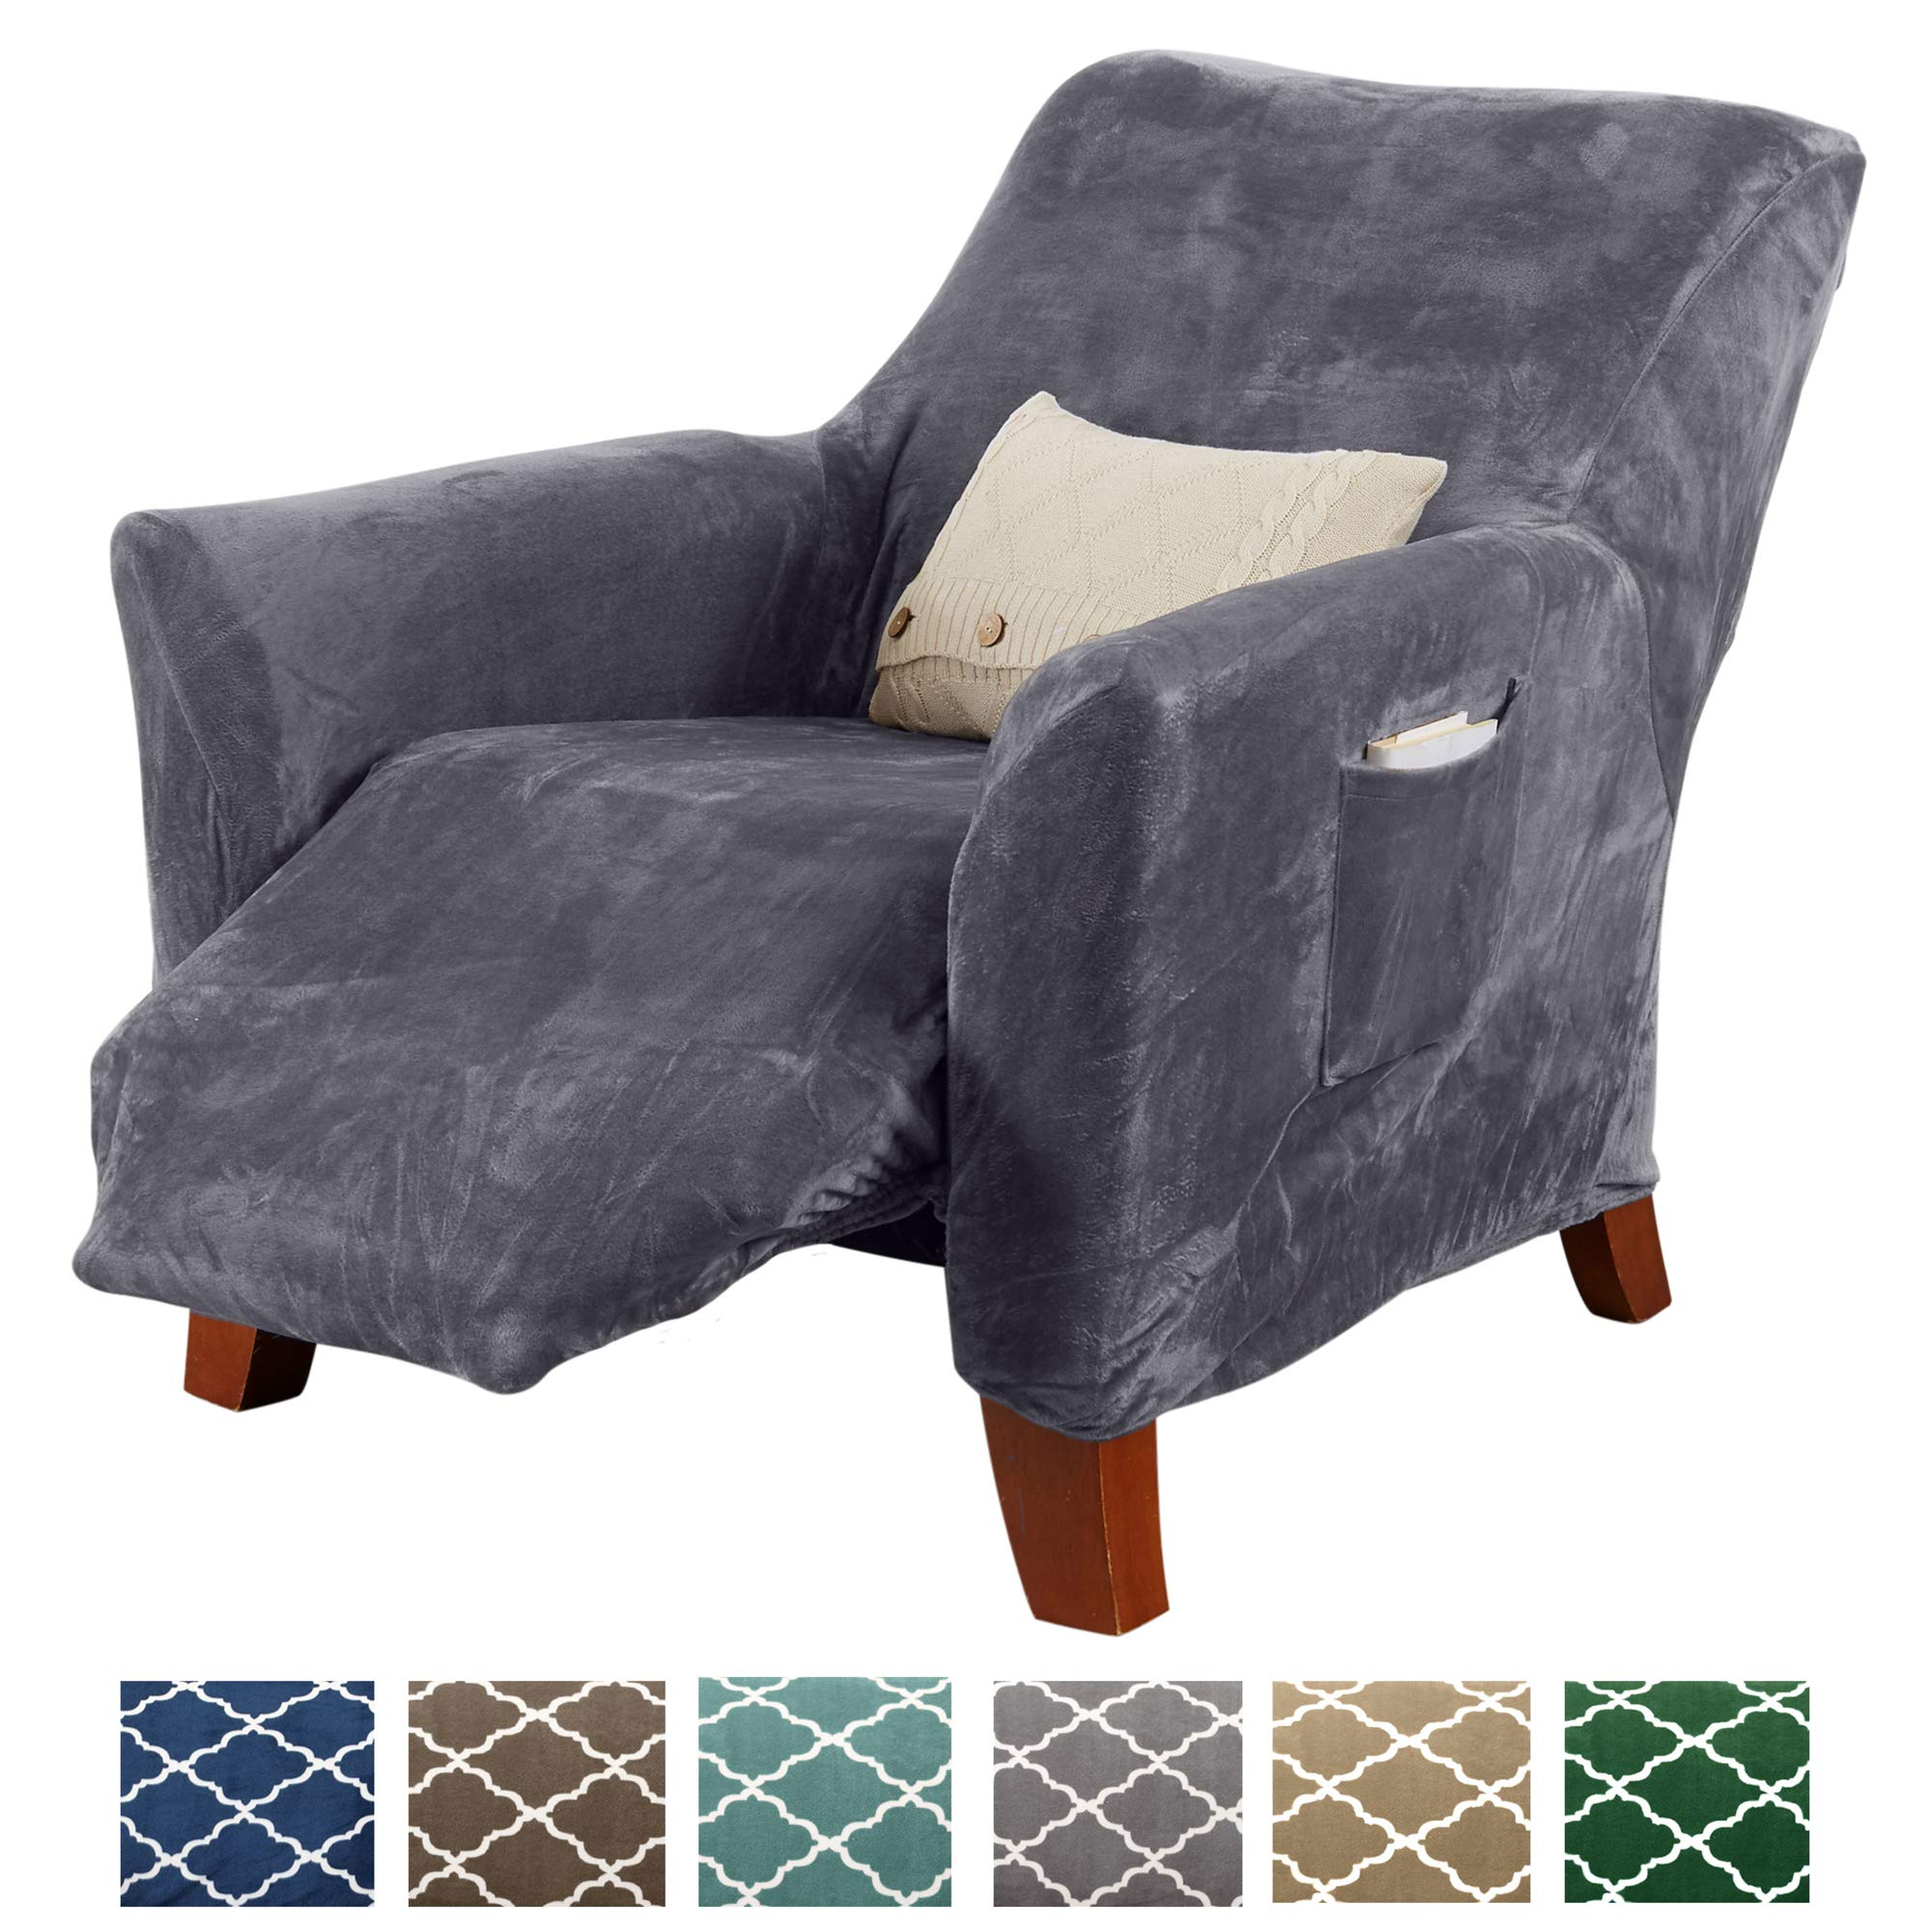 Shield Back Dining Chairs Chair Pads Amp Cushions